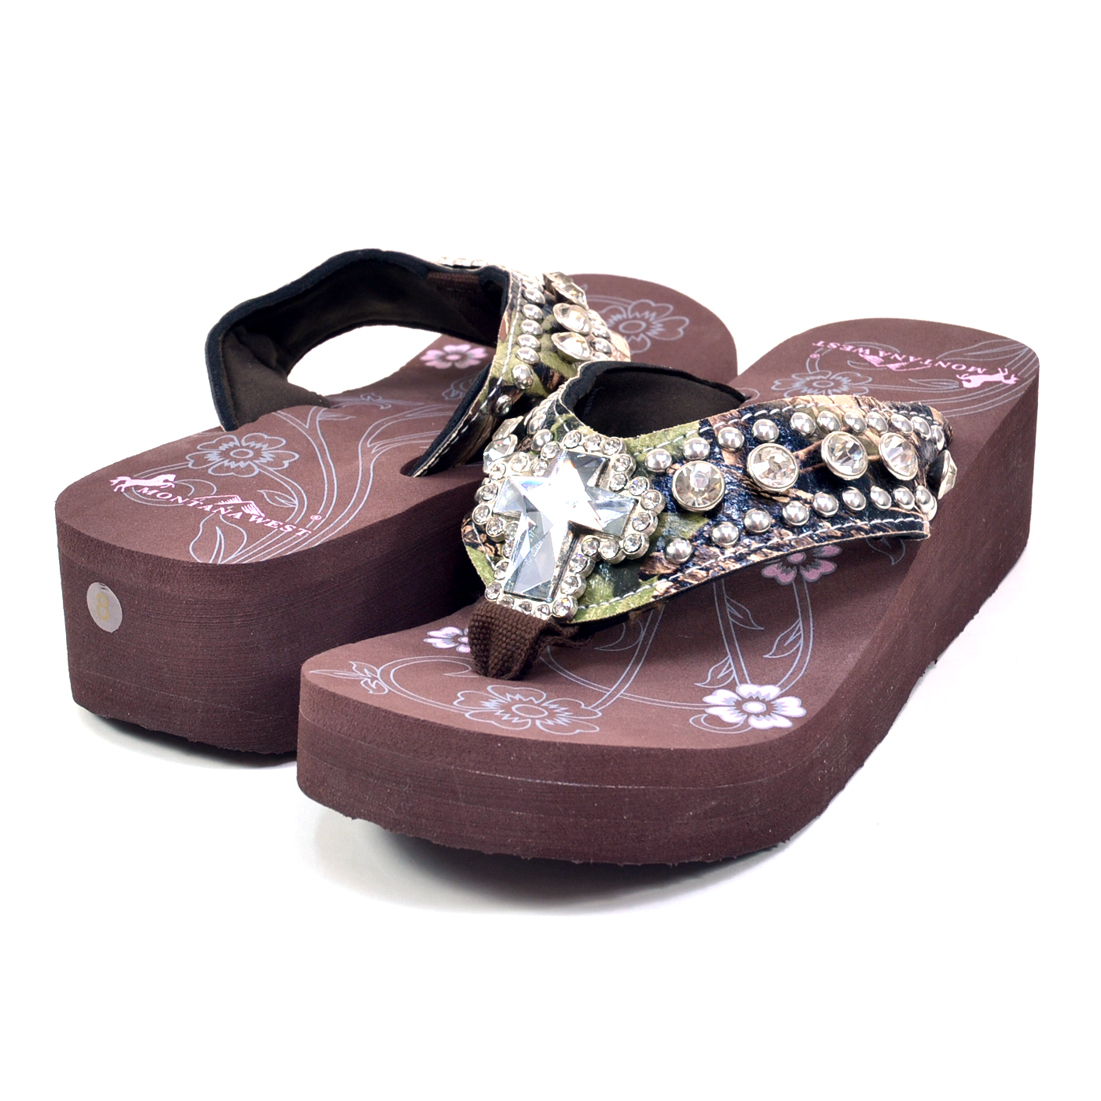 Montana West® Bling Cross Wedge Flip Flops